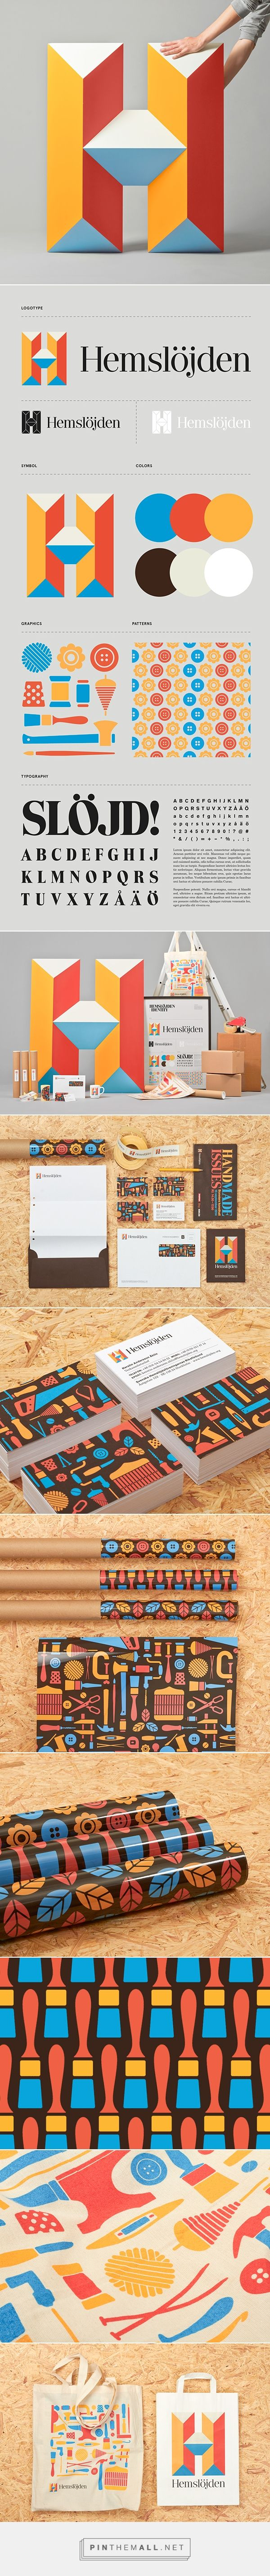 Swedish Handicraft Societies on Behance by Snask curated by Packaging Diva PD. Patterned packaging branding logos.